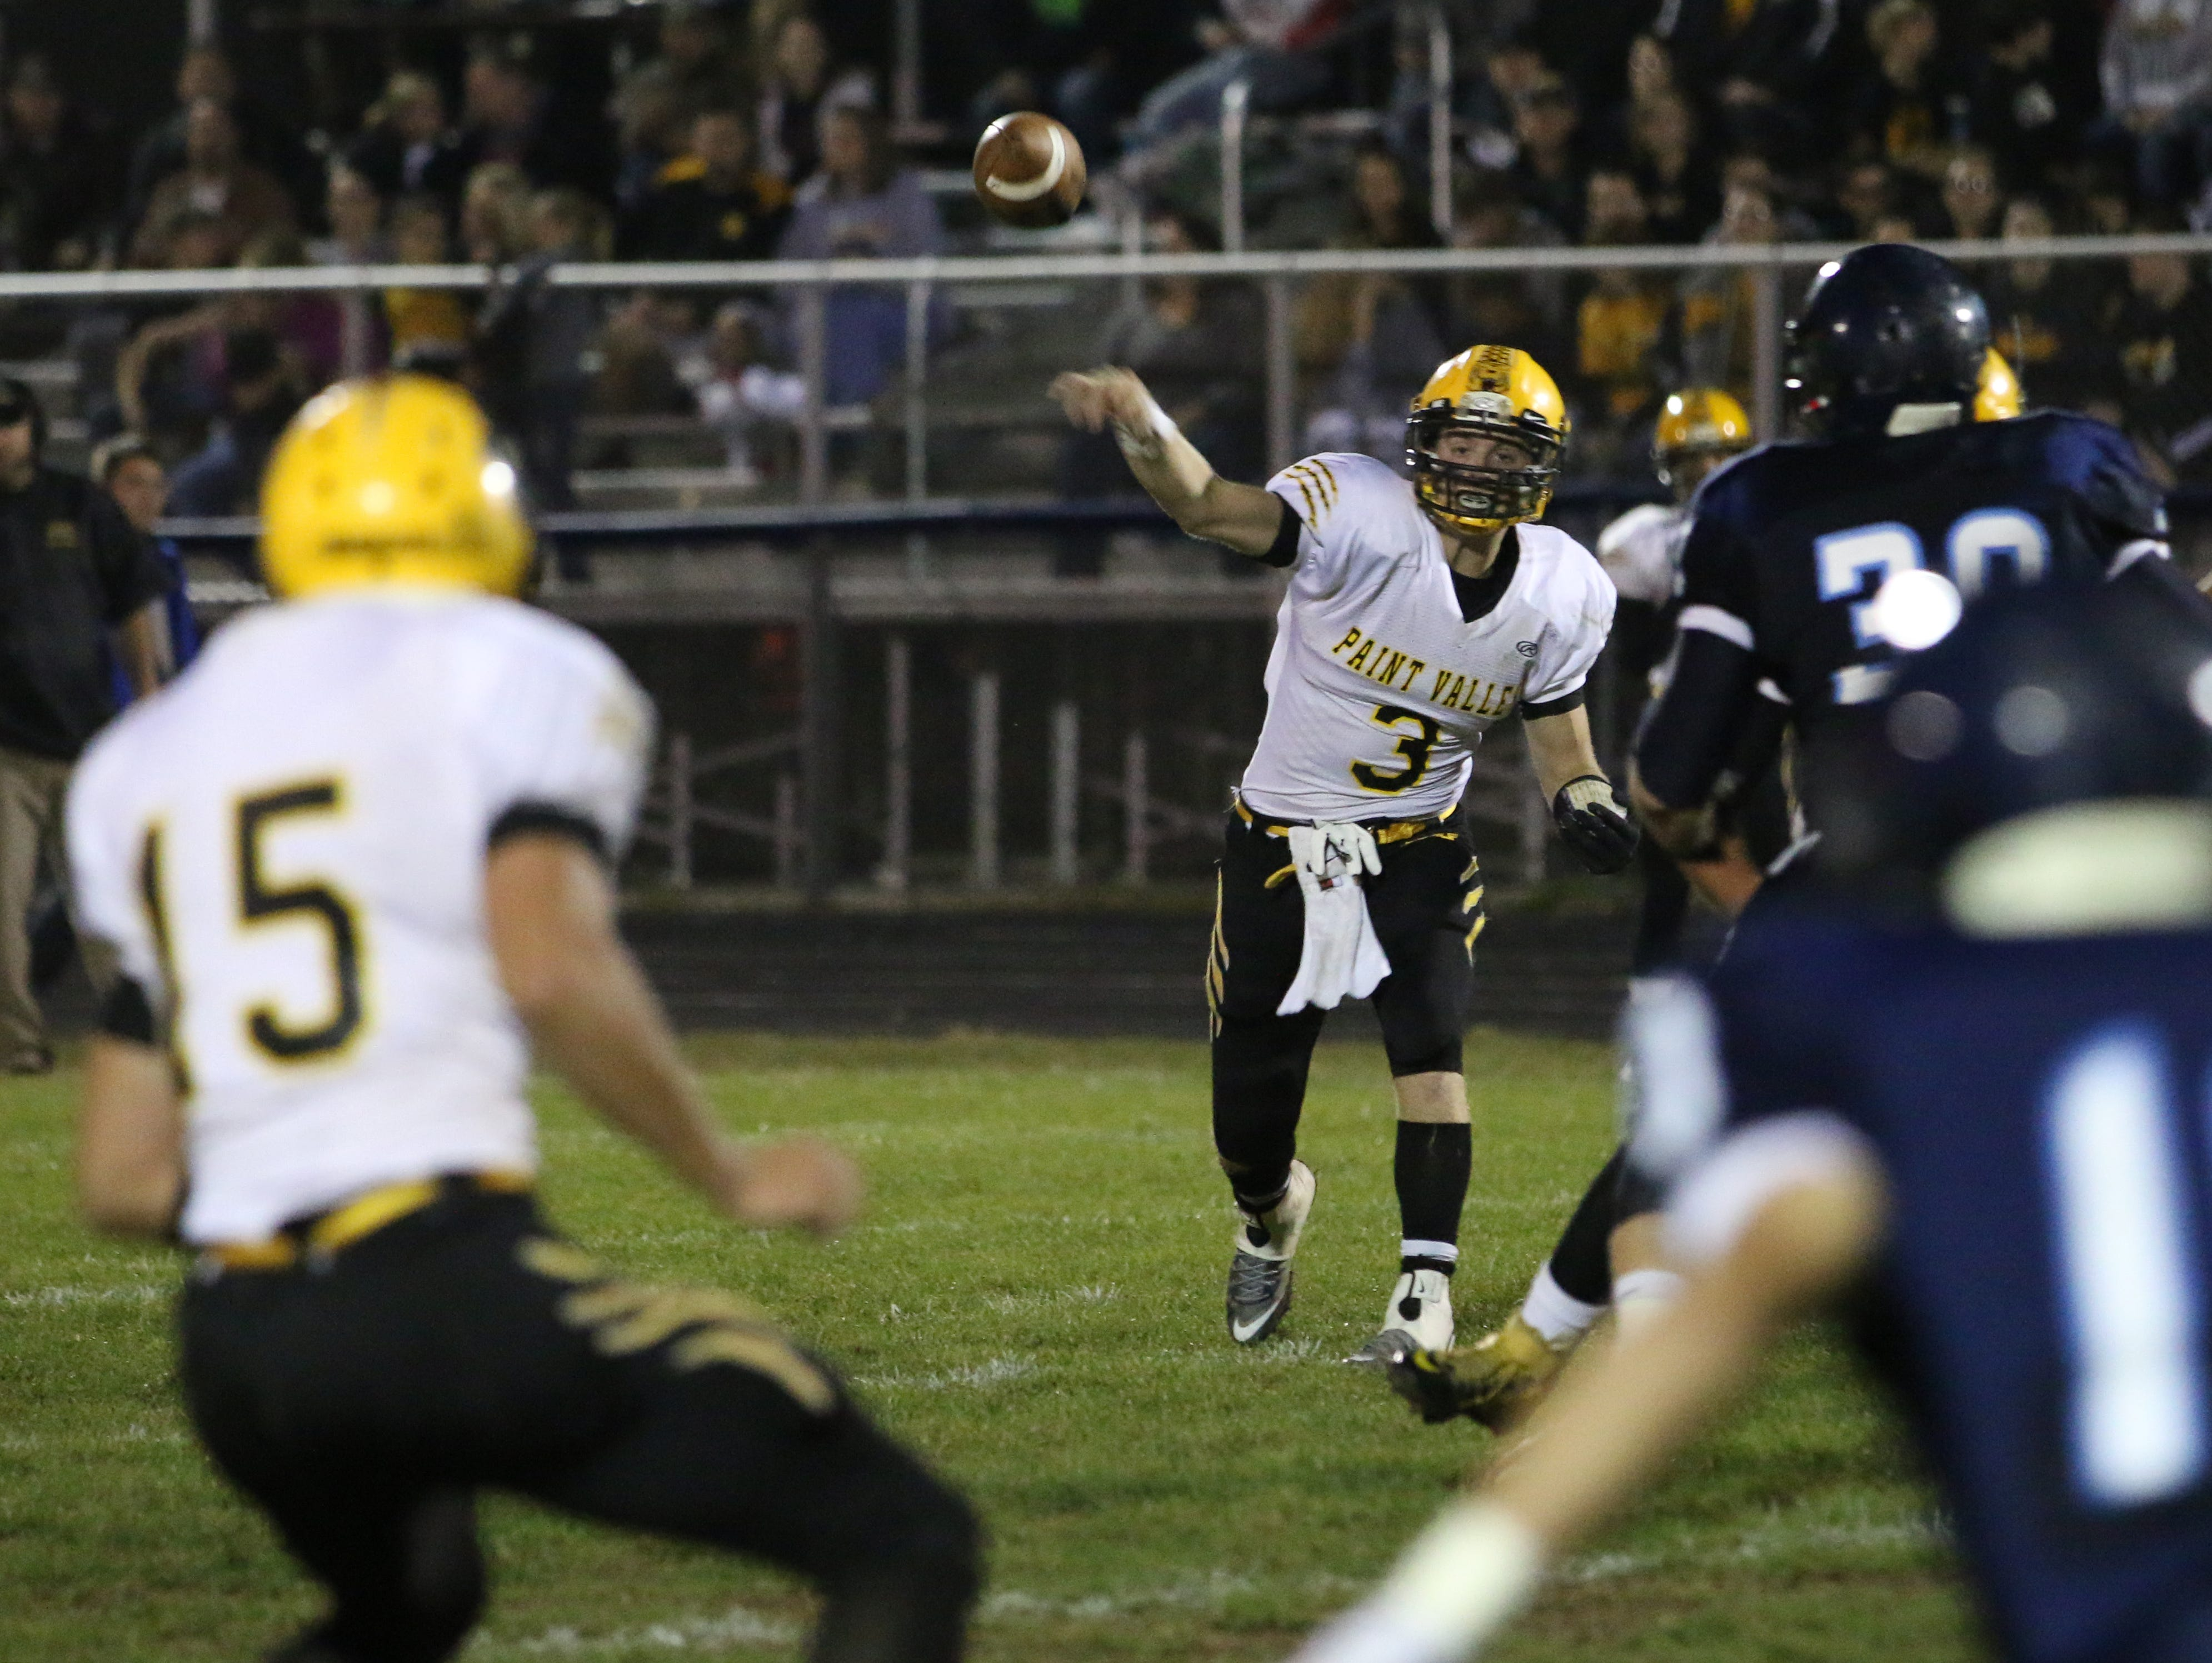 Paint Valley's Anthony McFadden throws the ball to a teammate during Paint Valley's game against Adena Friday at Adena High School.